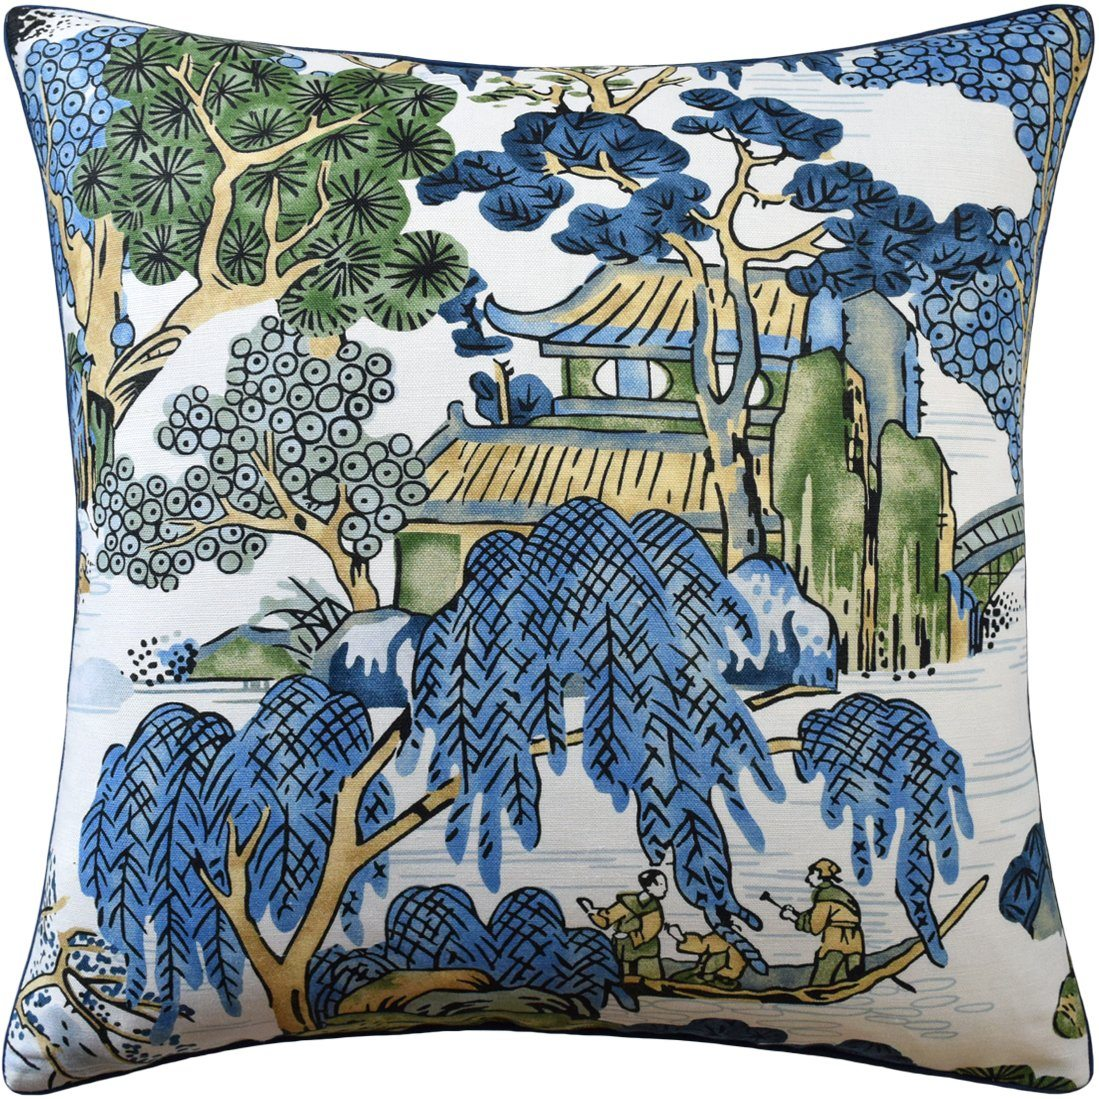 Asian Scenic Blue and Green Decorative Pillow Ryan Studio